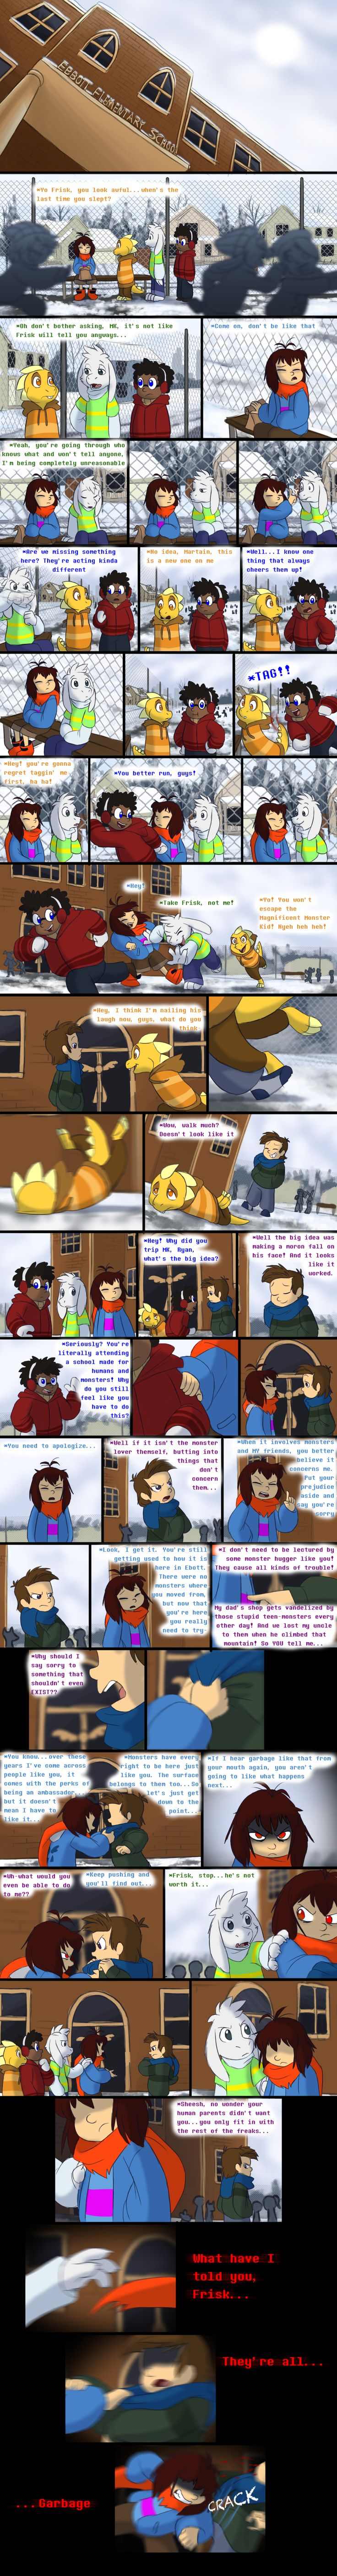 Endertale - Page 22 by TC-96 on DeviantArt